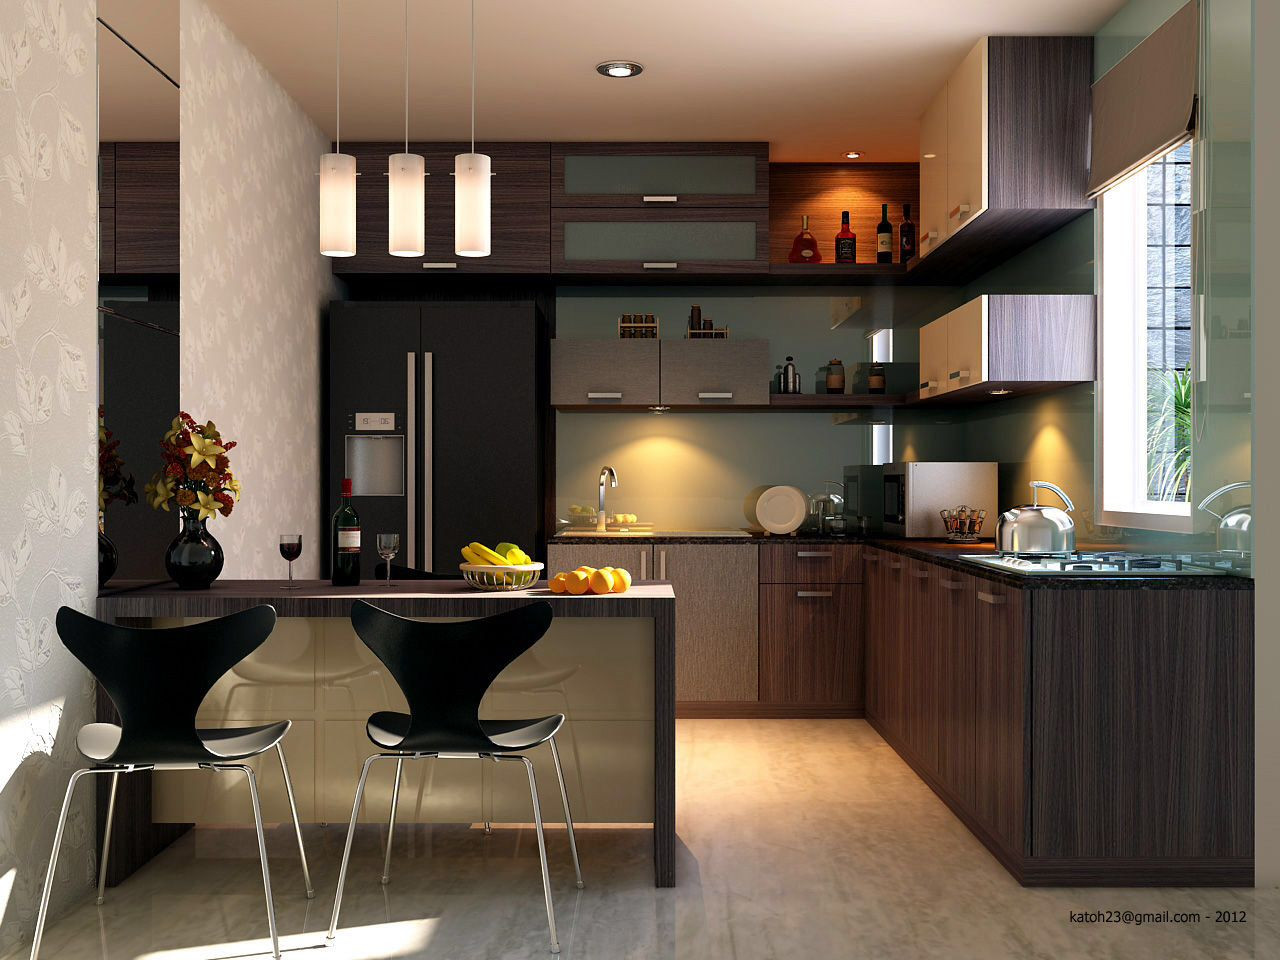 Classy Tiny Kitchen Elegant Small Kitchen Kitchen